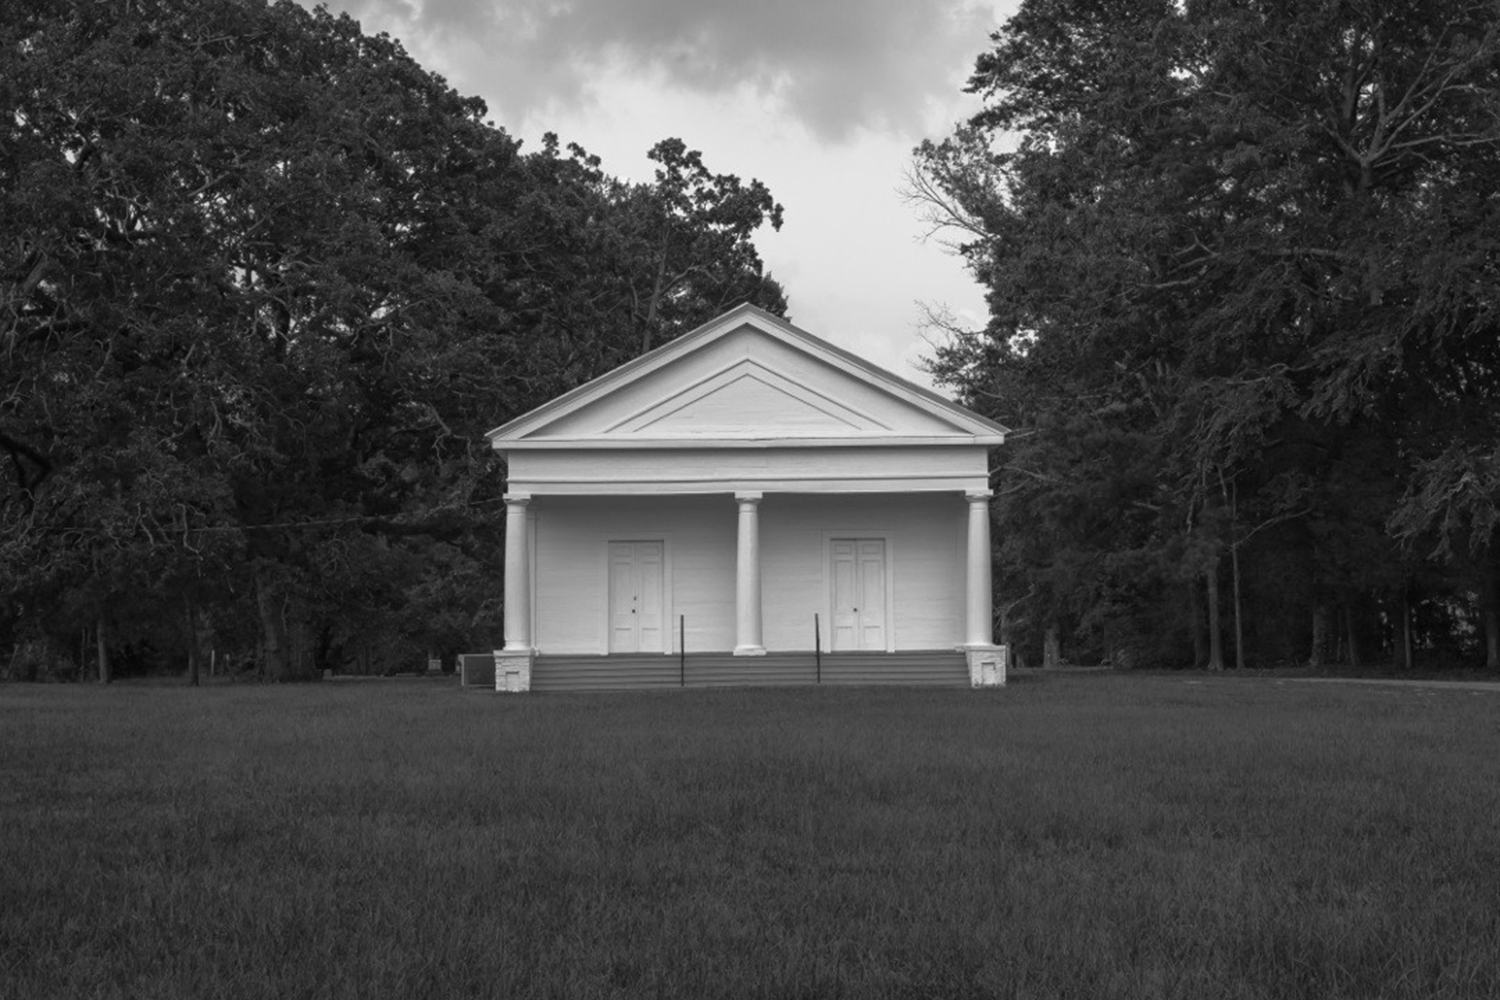 Newbern Presbyterian Church (1848), Newbern, Al